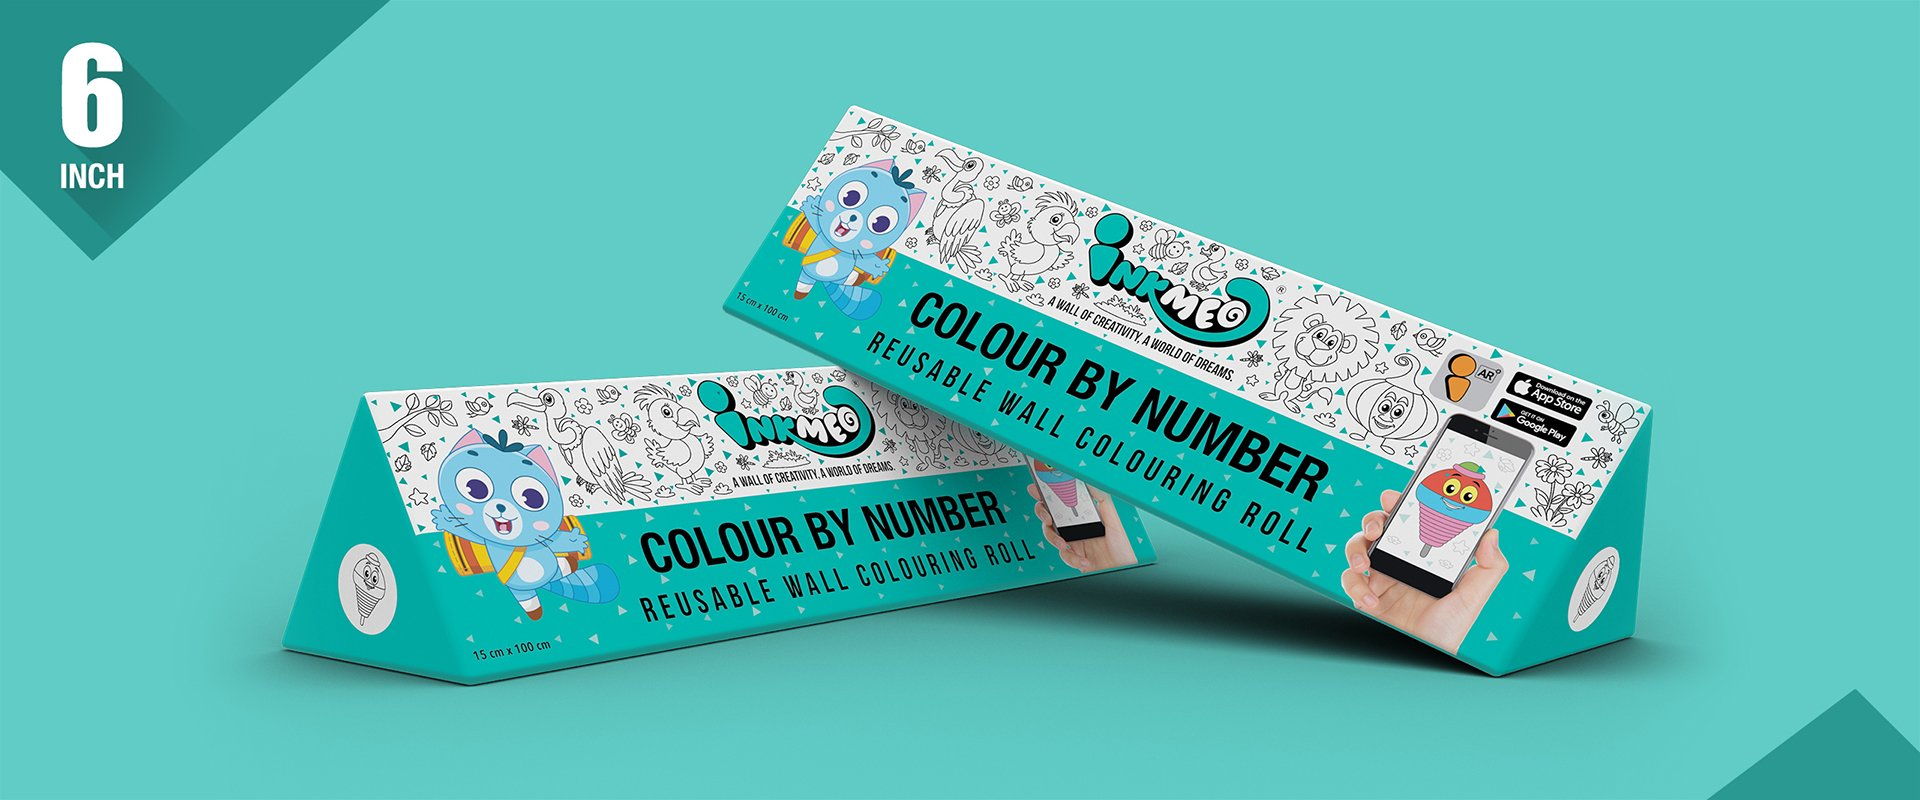 Colour by Number Colouring Roll (6 inch) - Inkmeo